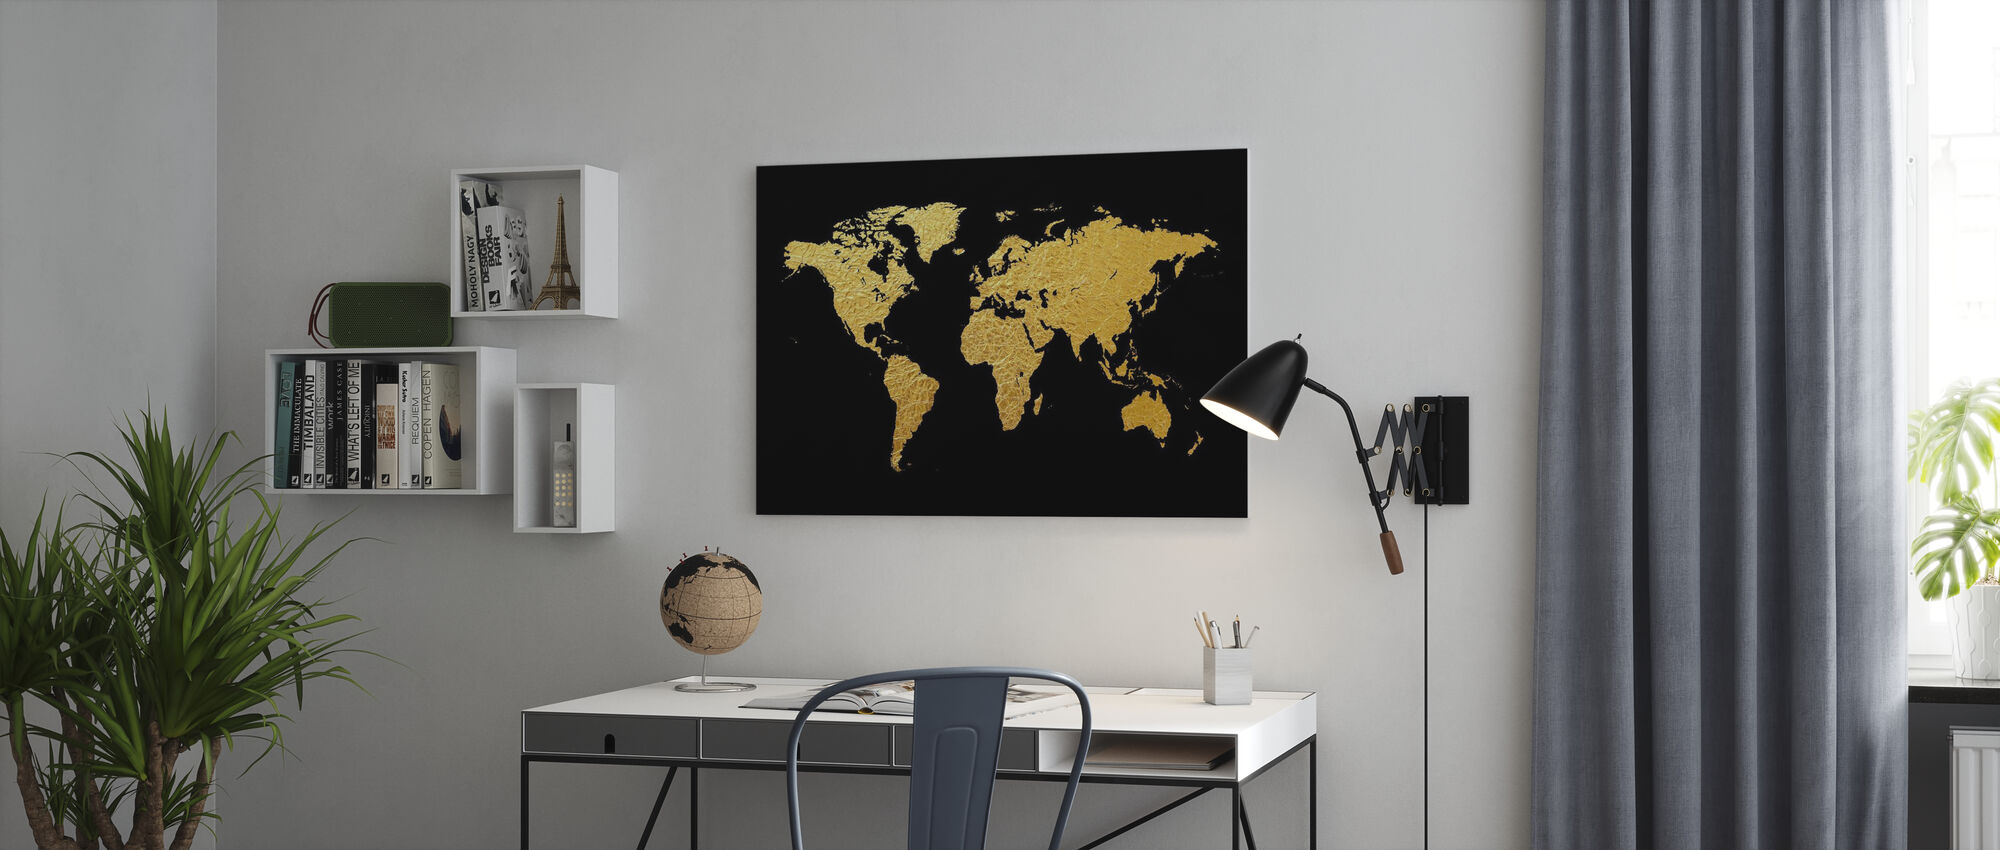 Gold World Map with Black Background - Canvas print - Office